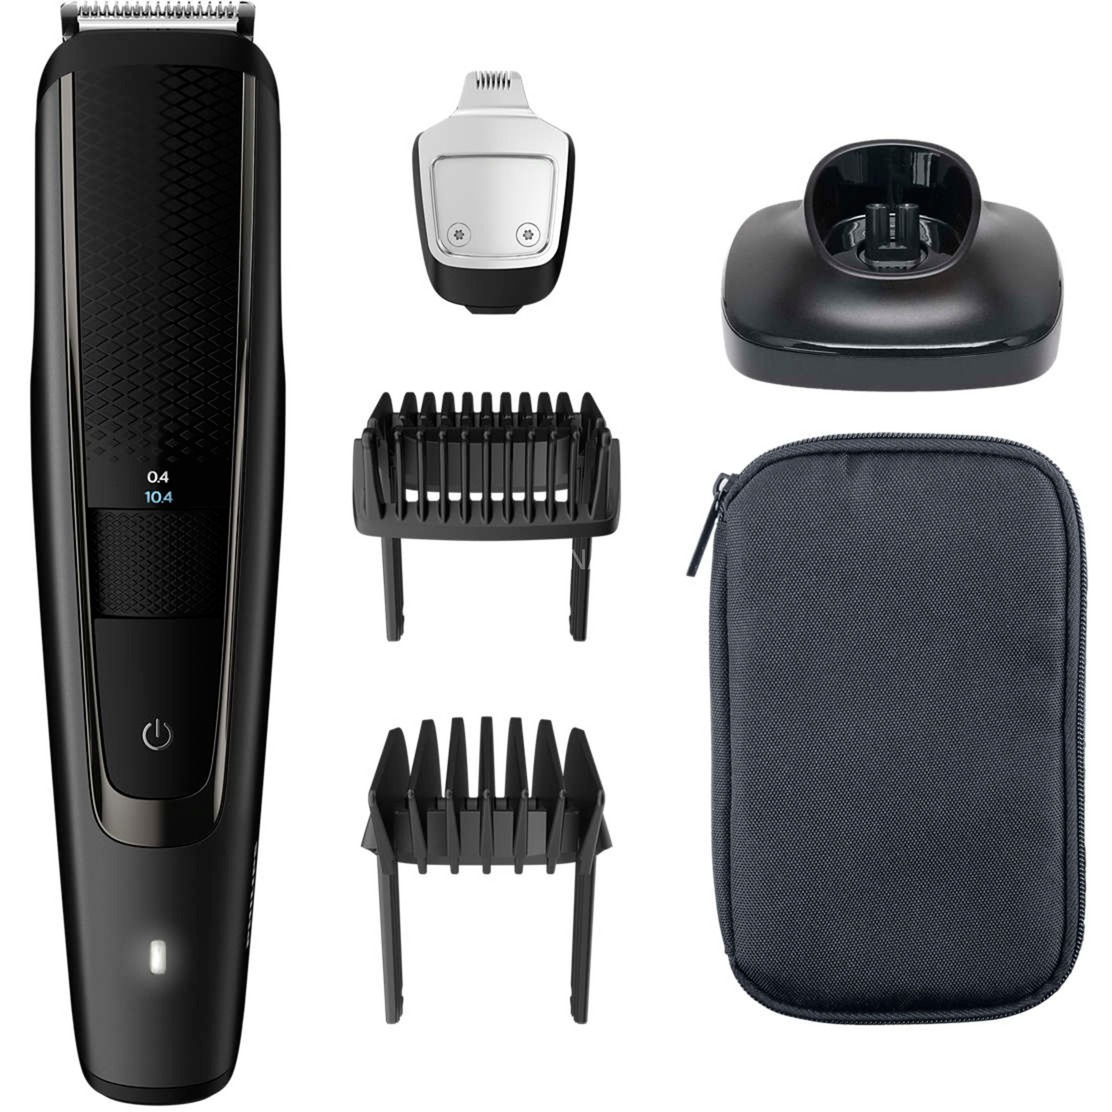 BEARDTRIMMER Series 5000 Barbero BT5515/15, Cortapelo para barba